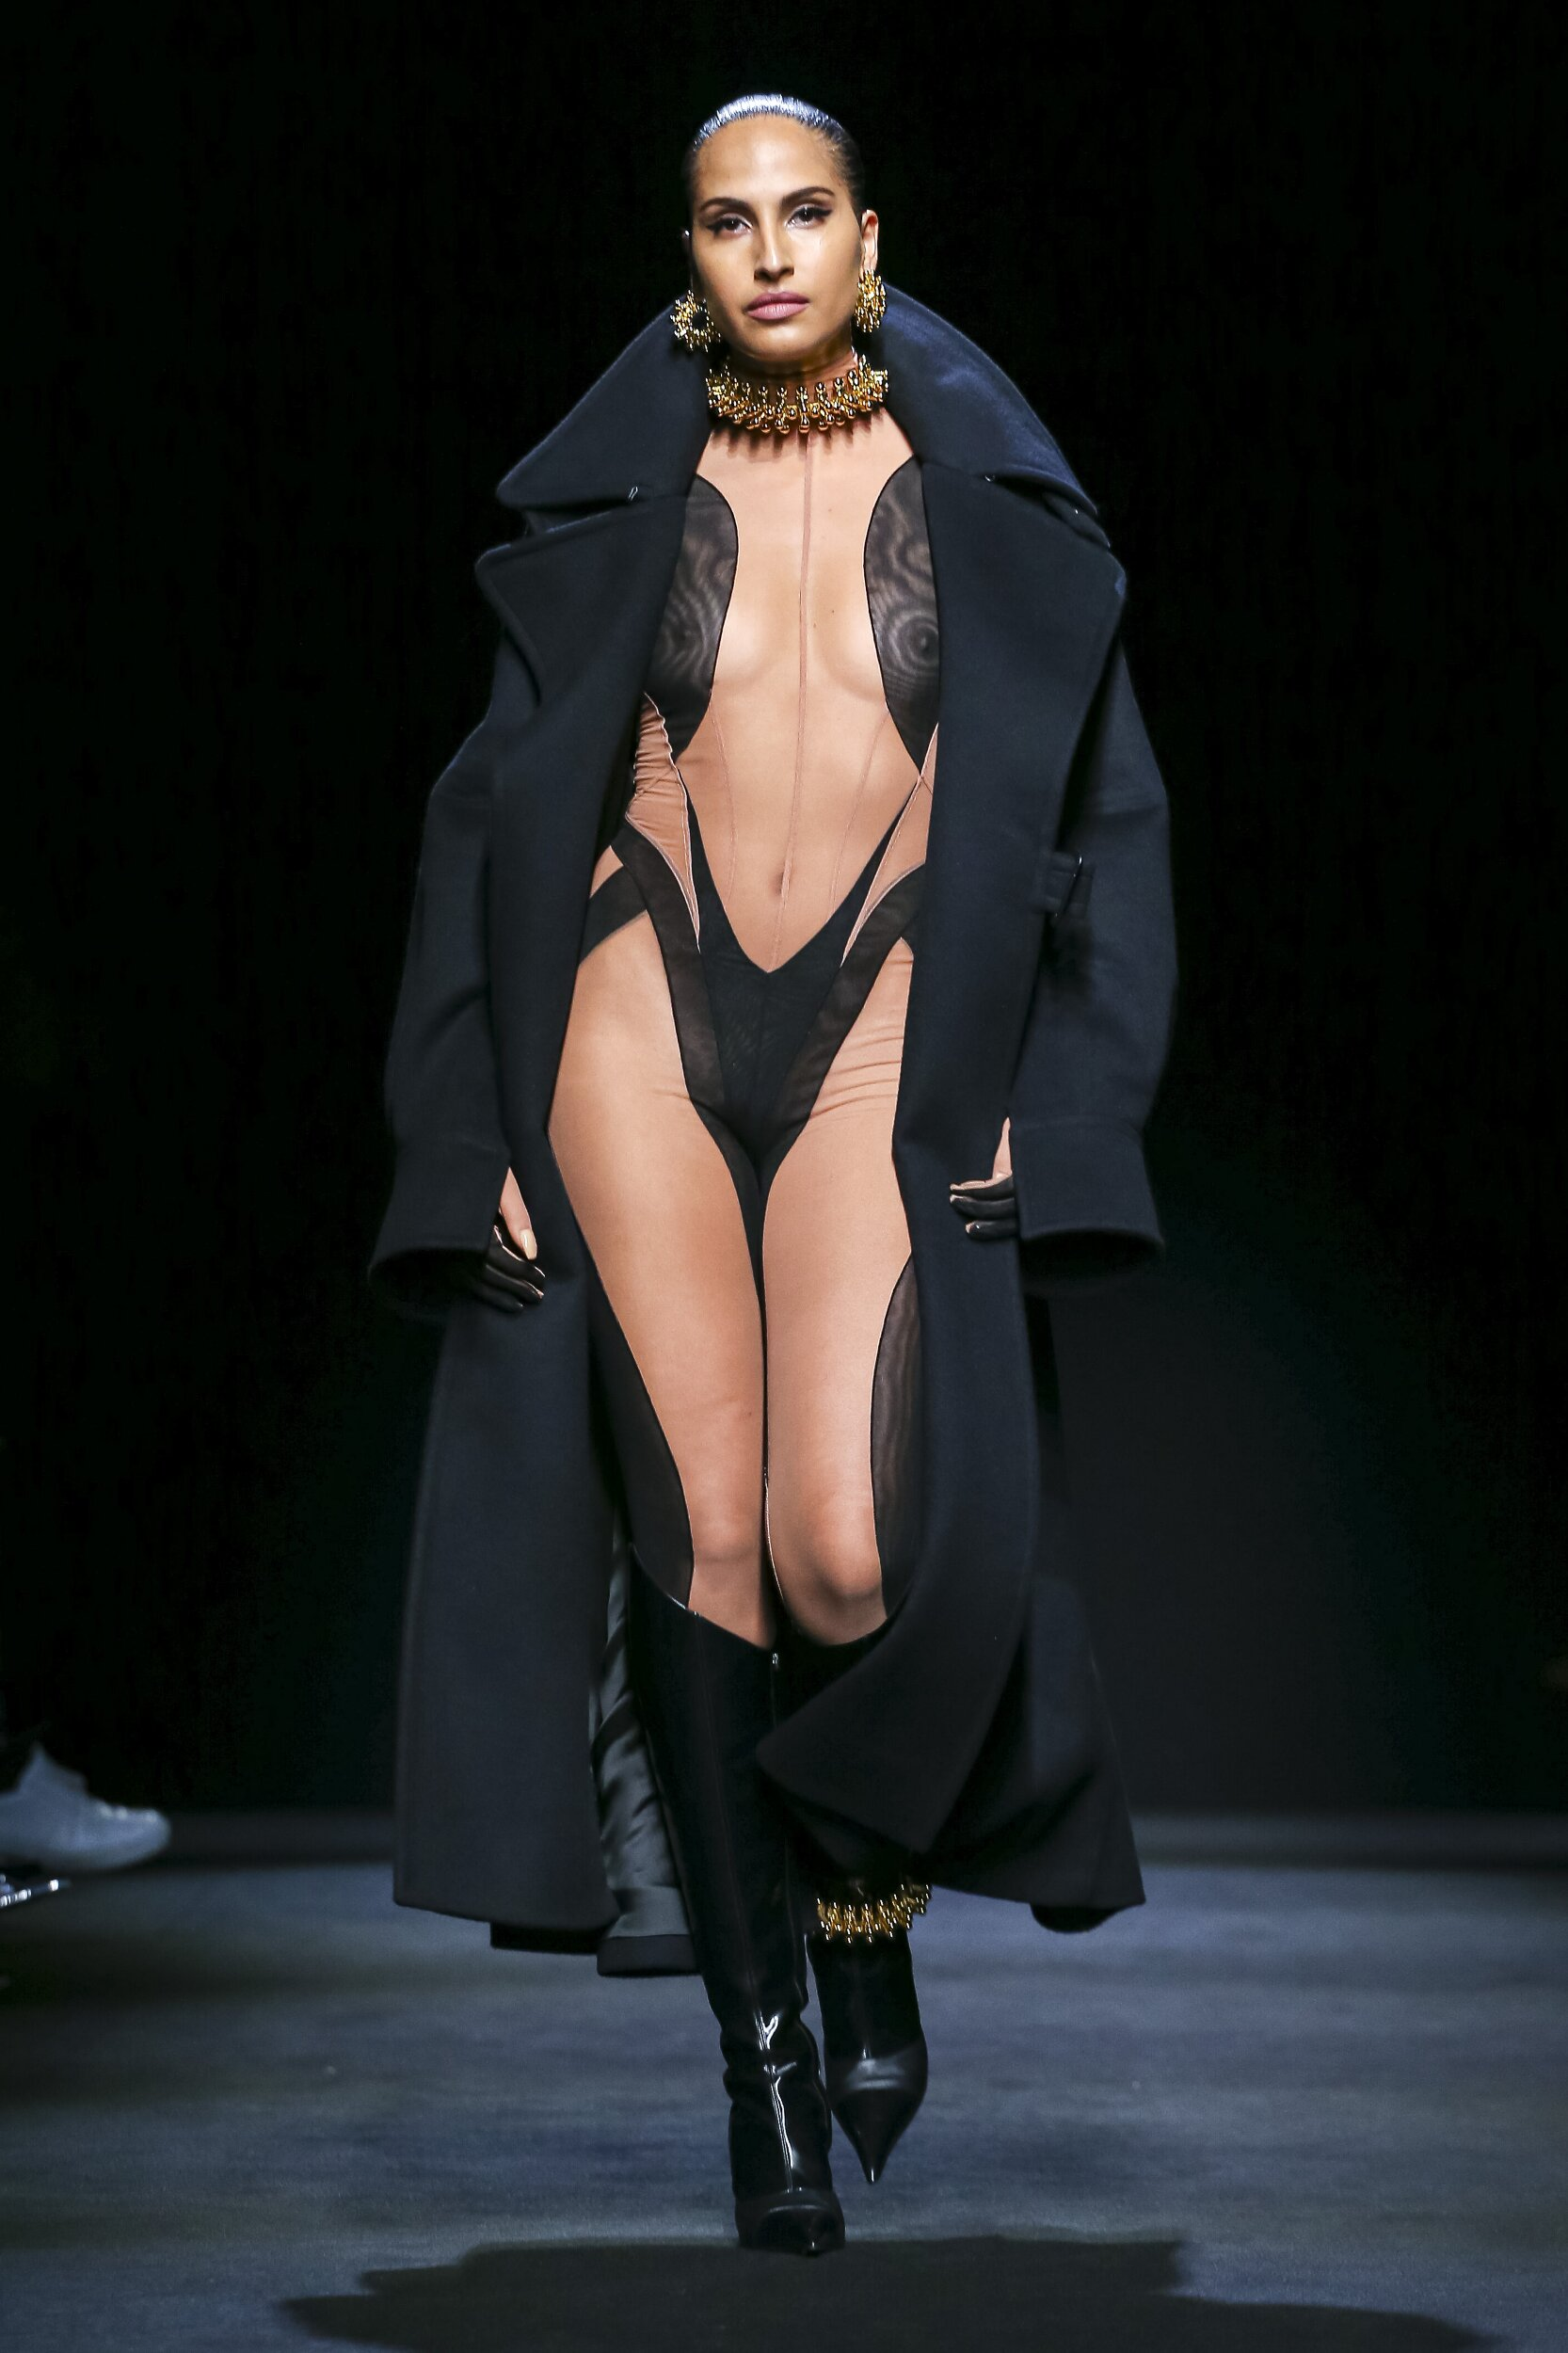 Catwalk Mugler Women Fashion Show Winter 2020